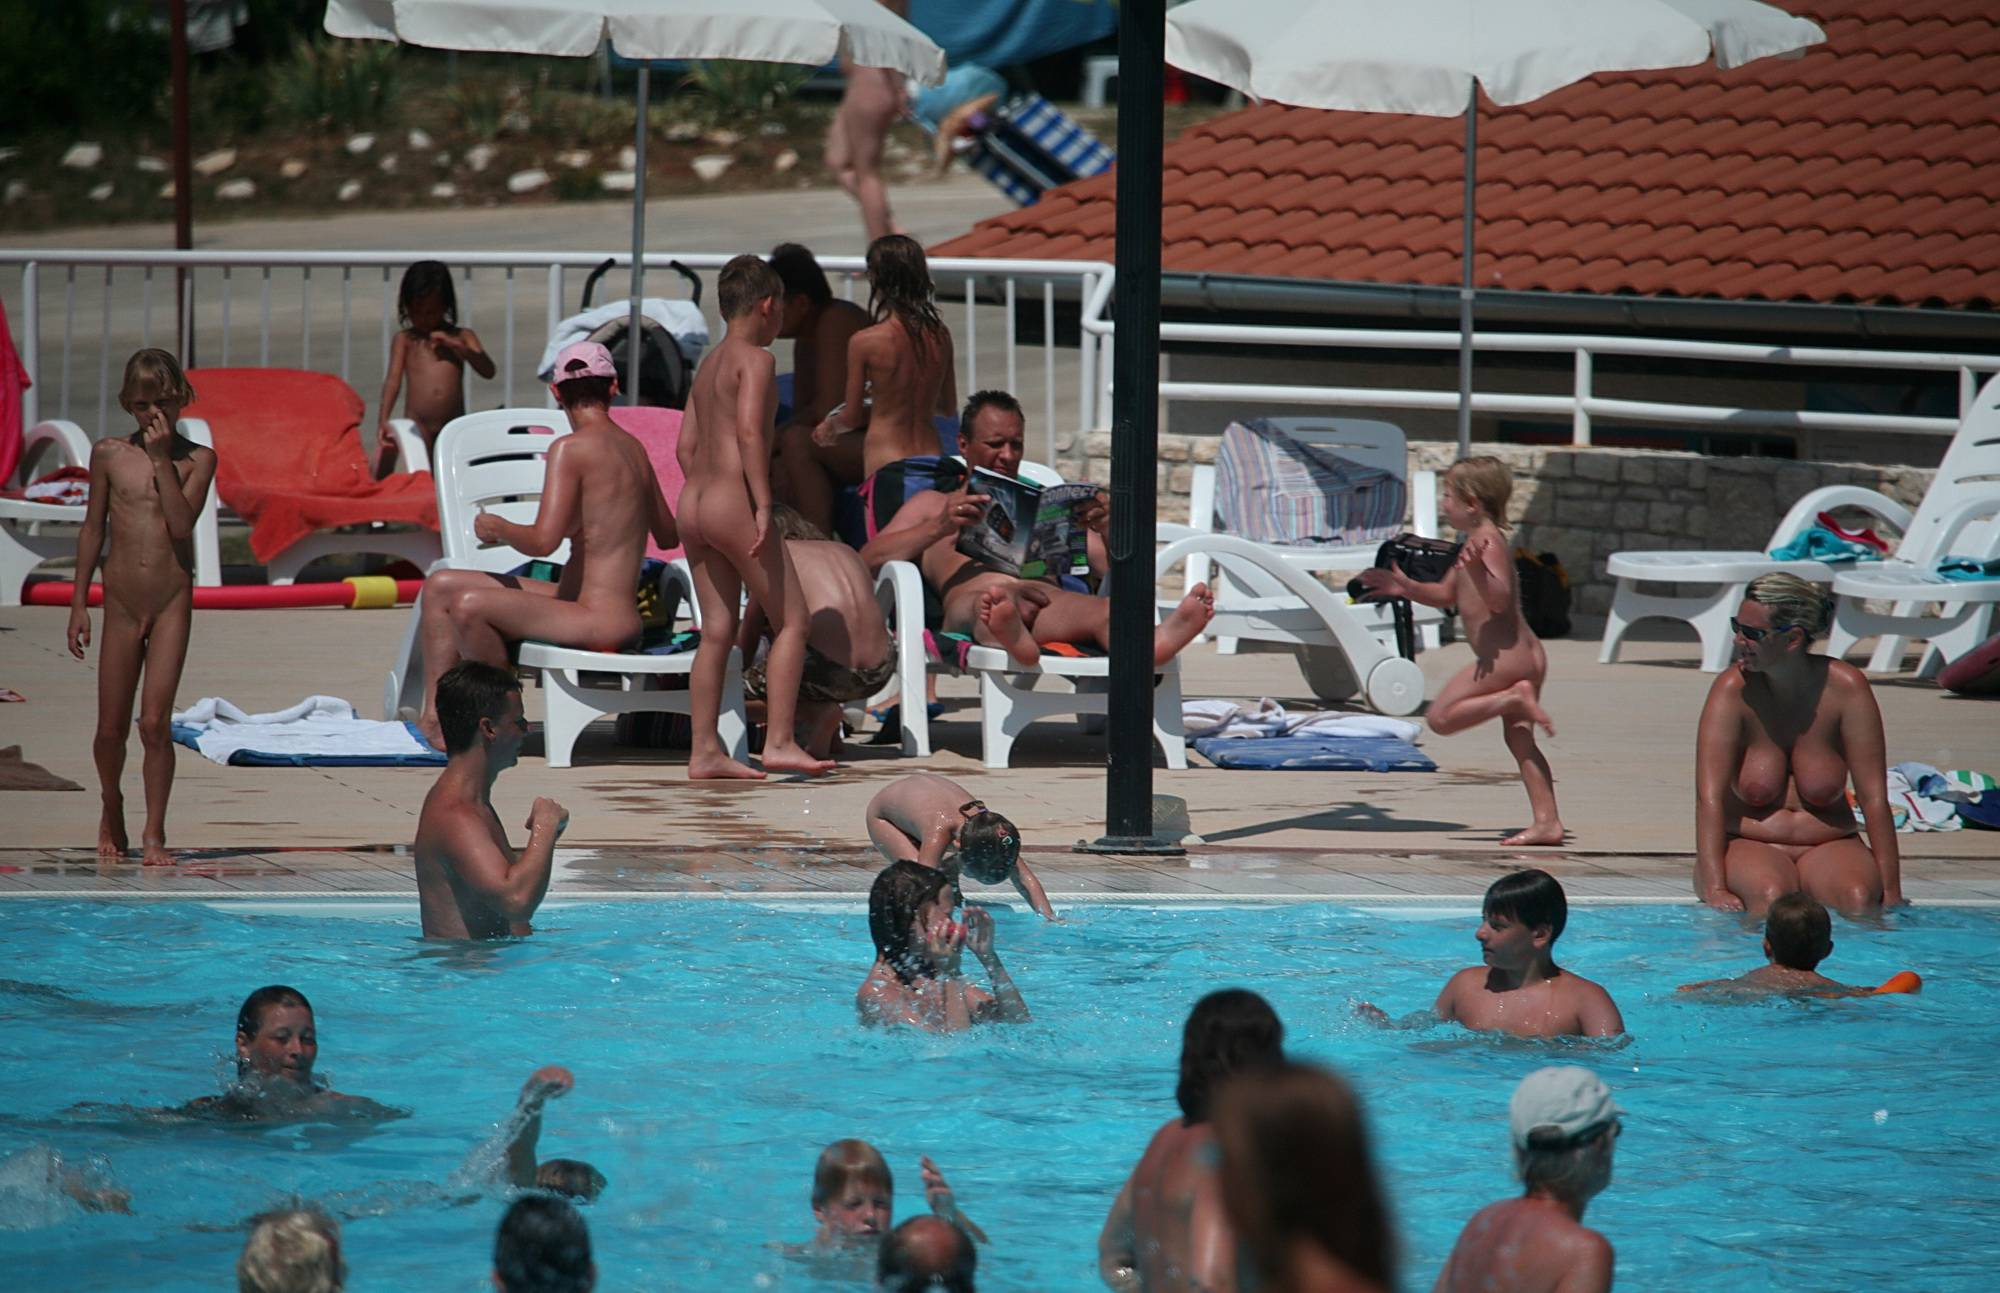 Nudist Gallery Large Pool Gatherings - 1